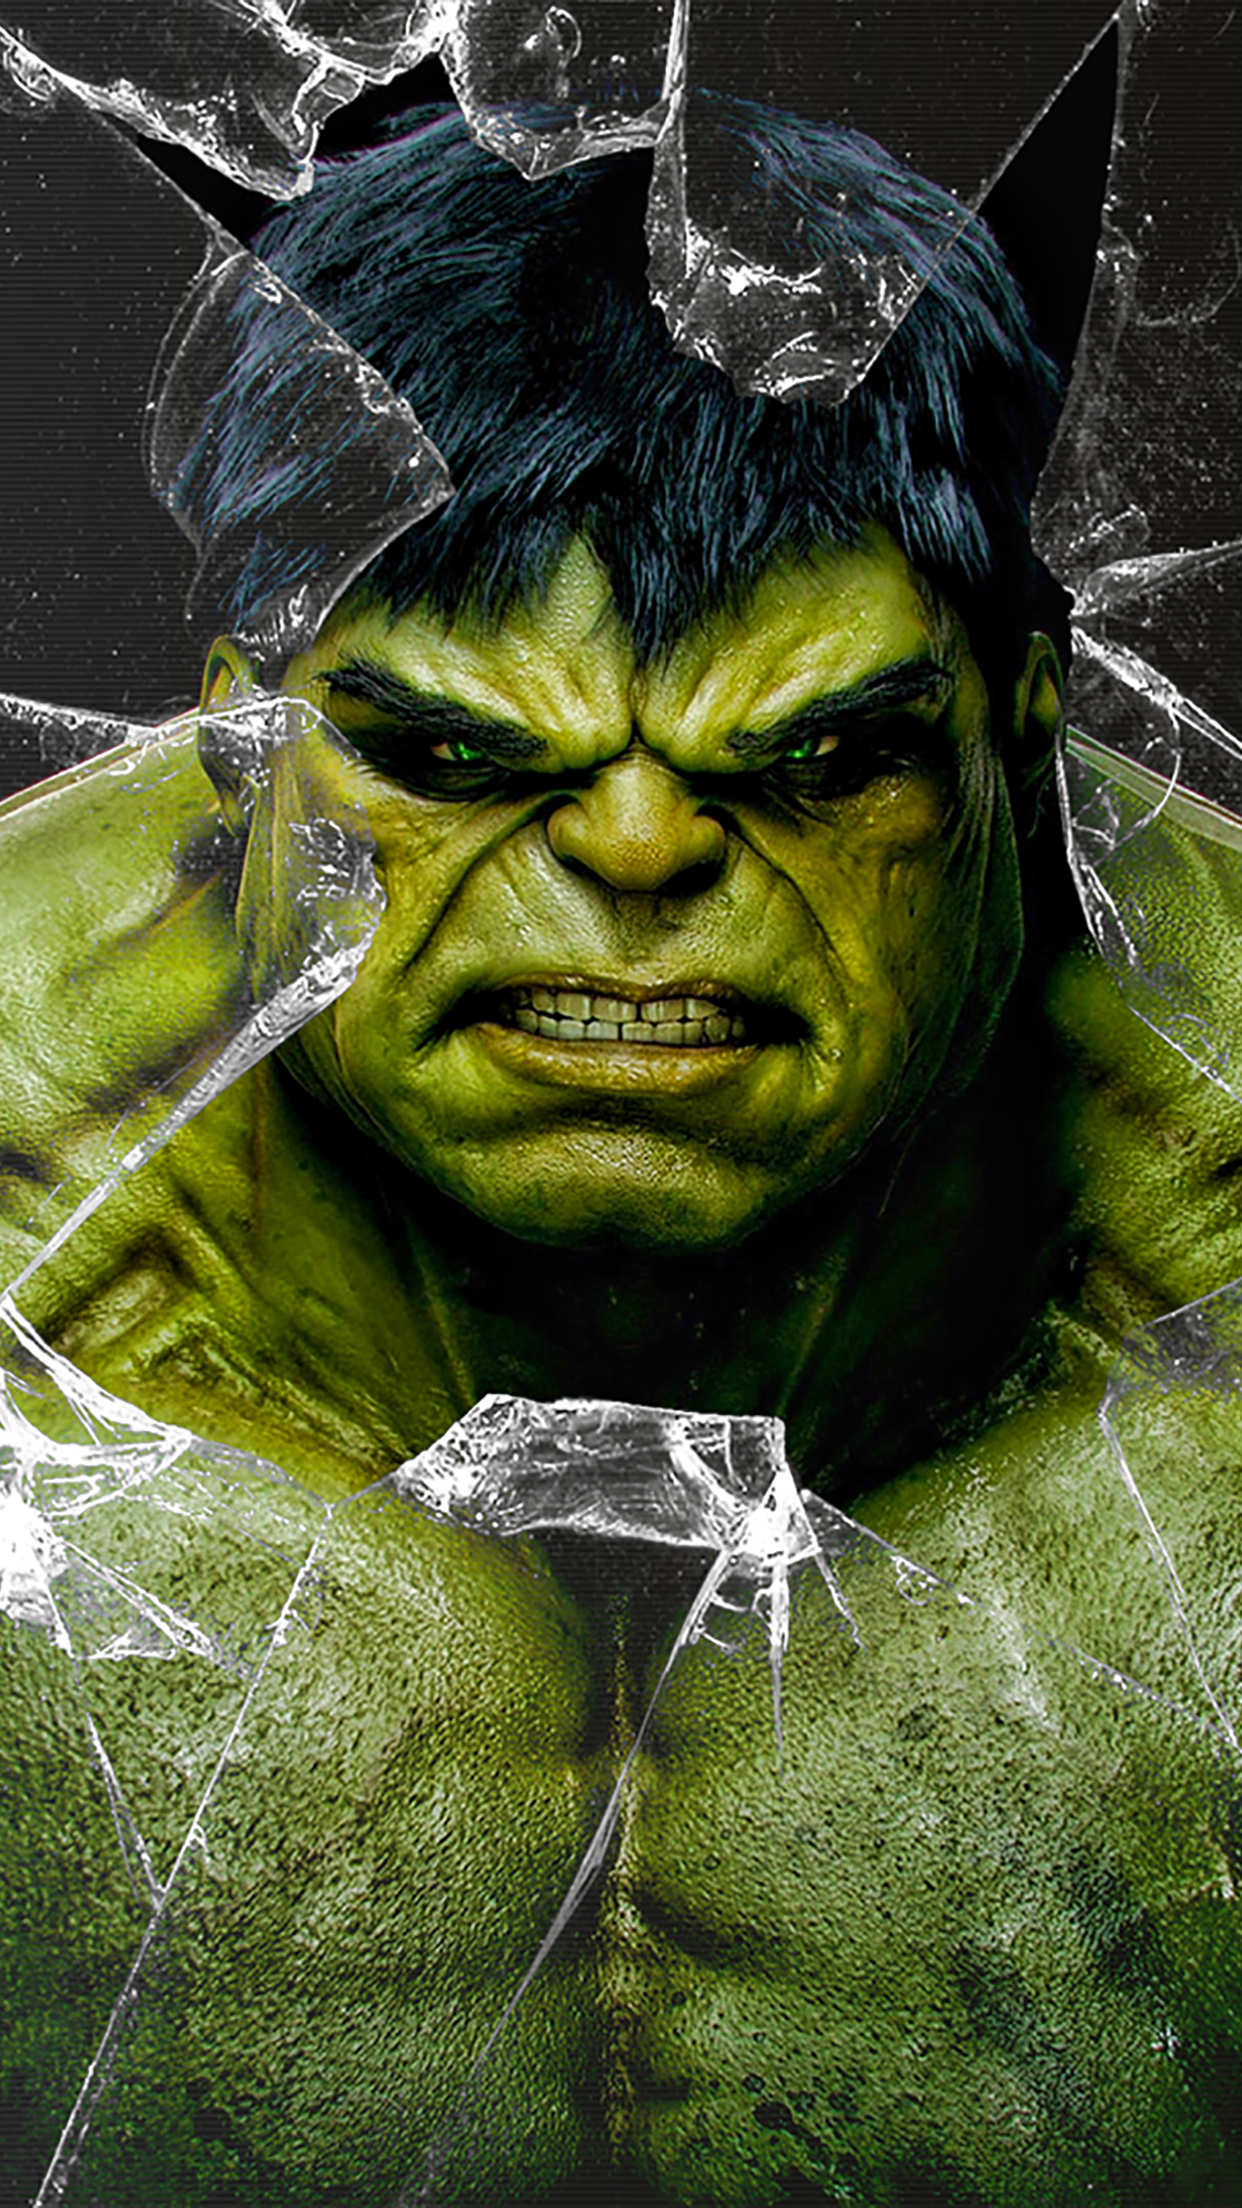 Samsung Mobile Hd Wallpapers Free Download Hulk Broken Glass Wallpaper For Iphone X 8 7 6 Free